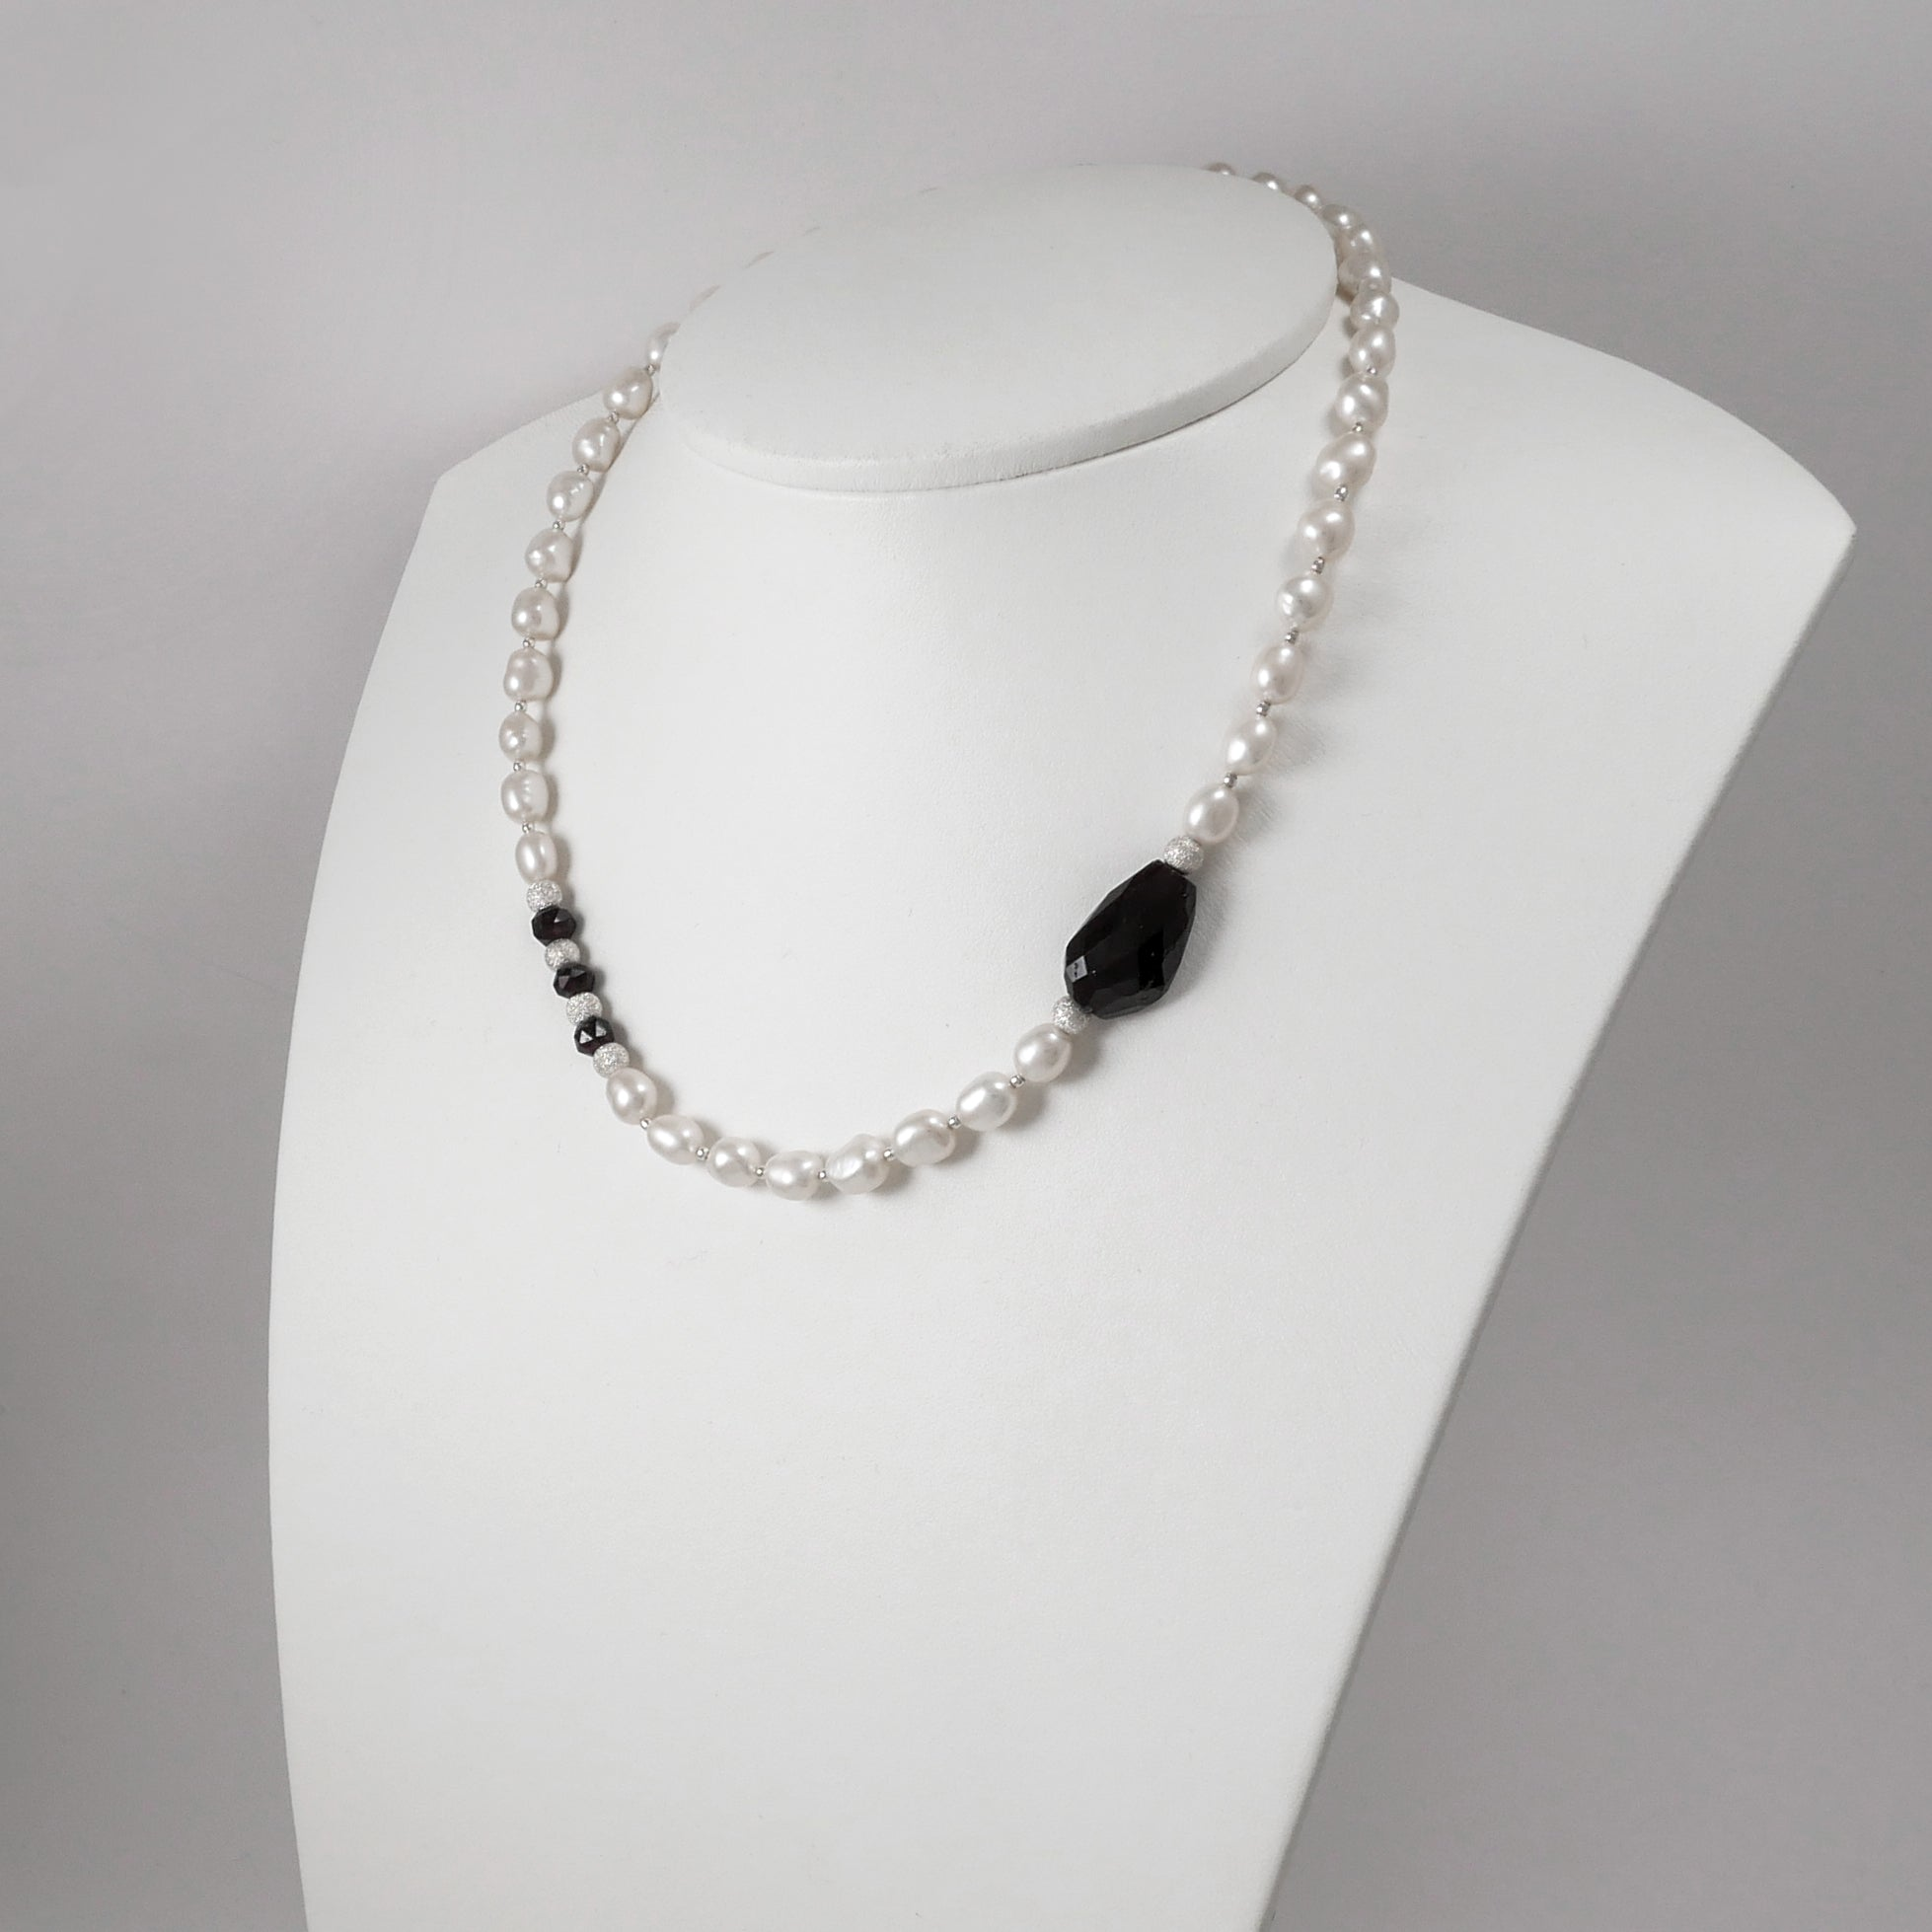 Pearls and Garnets Necklace - Katerina Roukouna